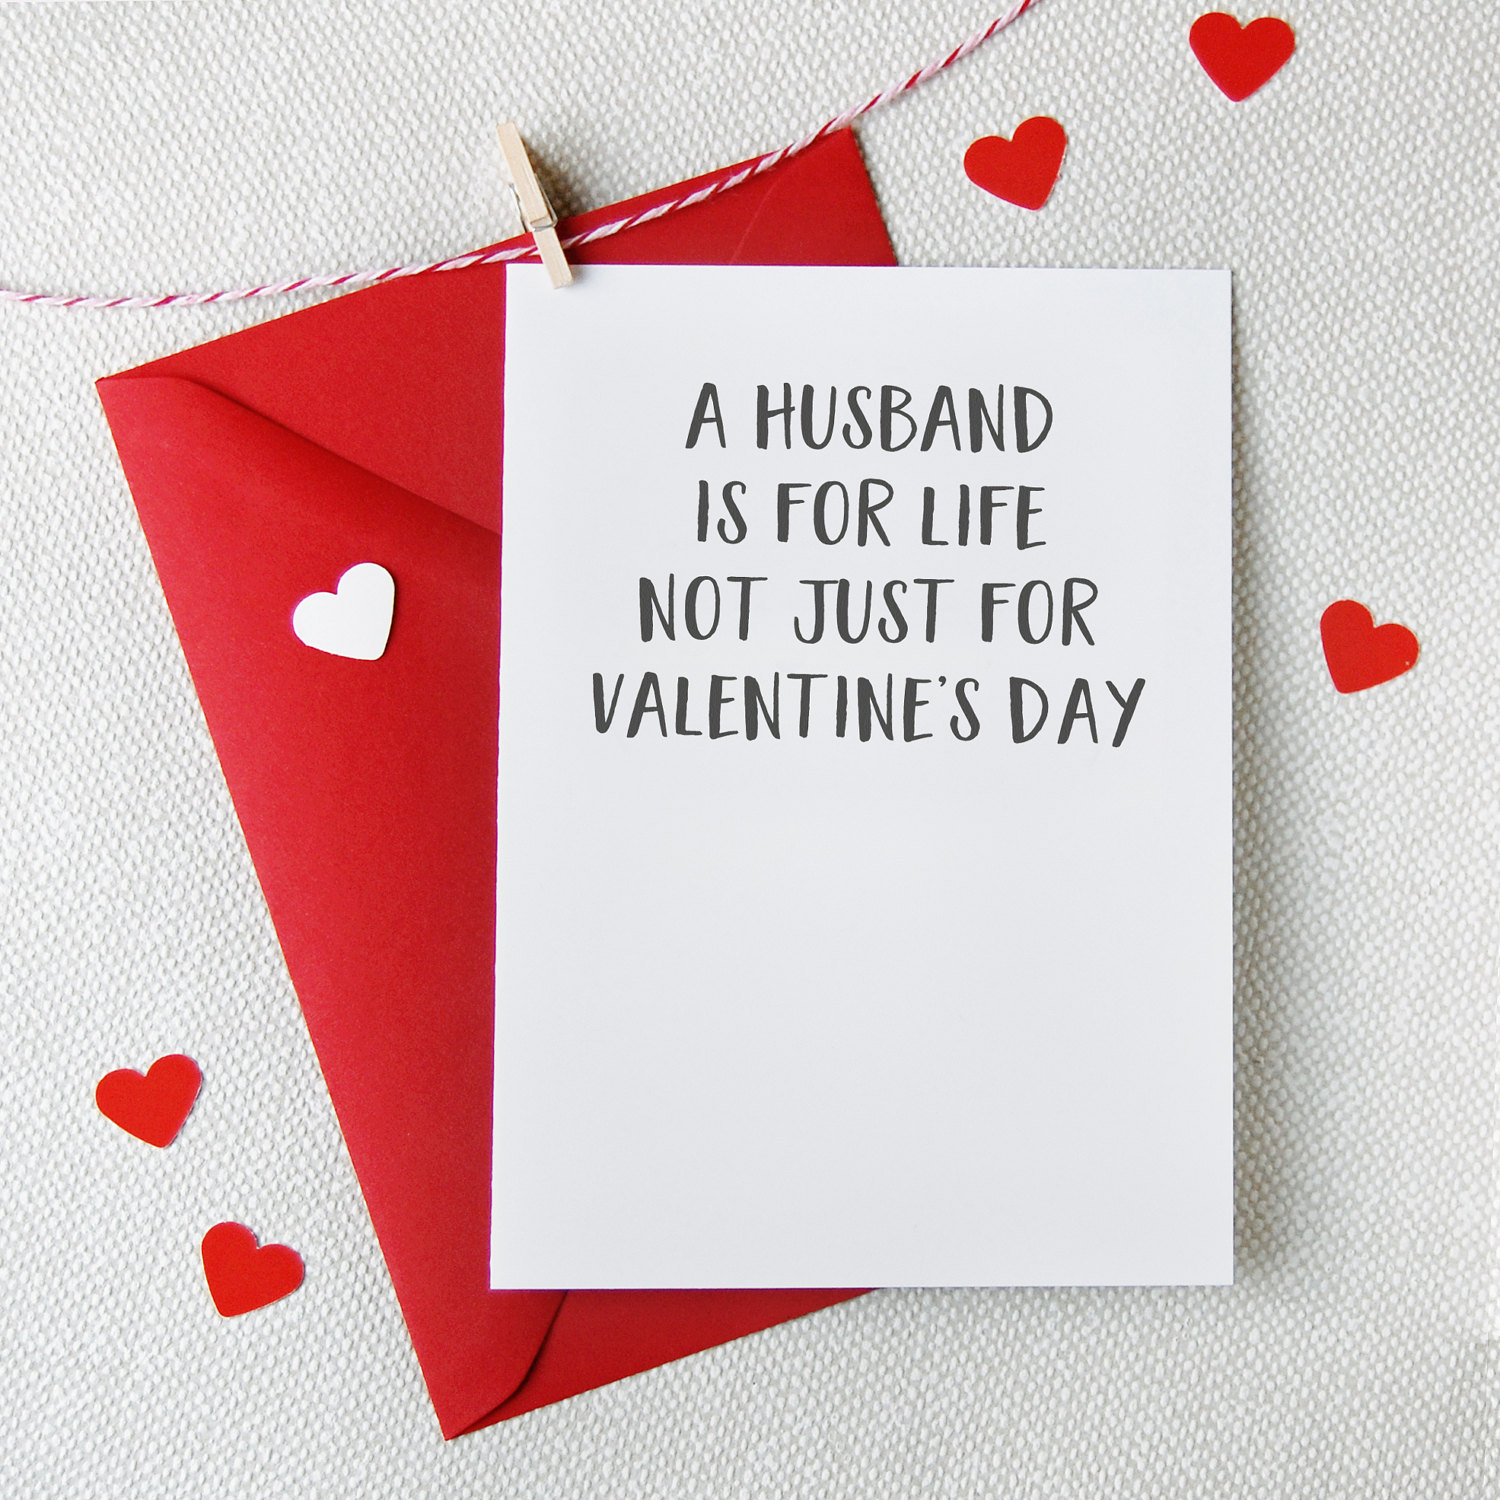 A Husband Is For Life Not Just For Valentine's Day Funny